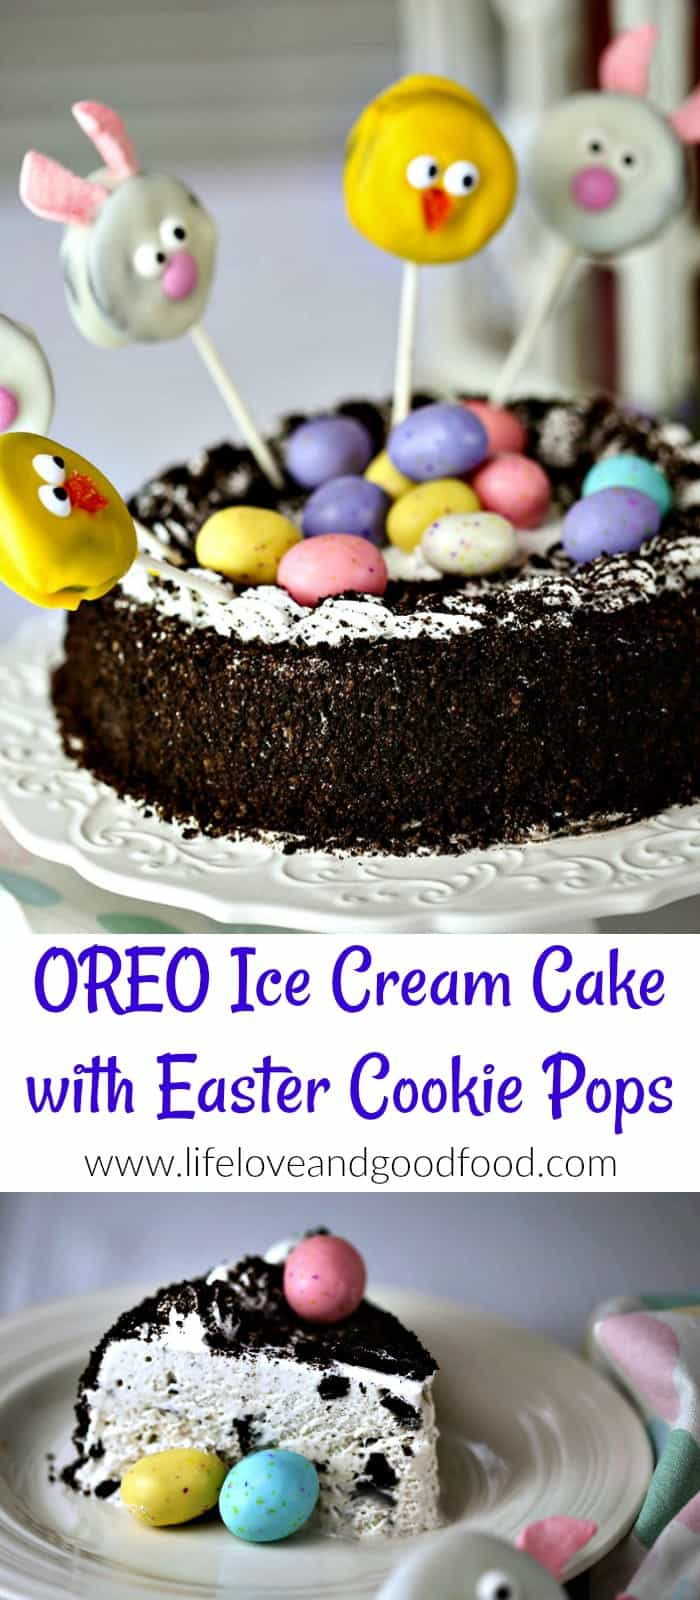 "Hop on into Spring with this adorable Easter dessert, an Oreo Ice Cream Cake decorated with a ""nest"" of speckled Easter eggs and crowned with pink bunny and yellow chick Oreo cookie pops! #IceCreamCakeBreak #sponsored"